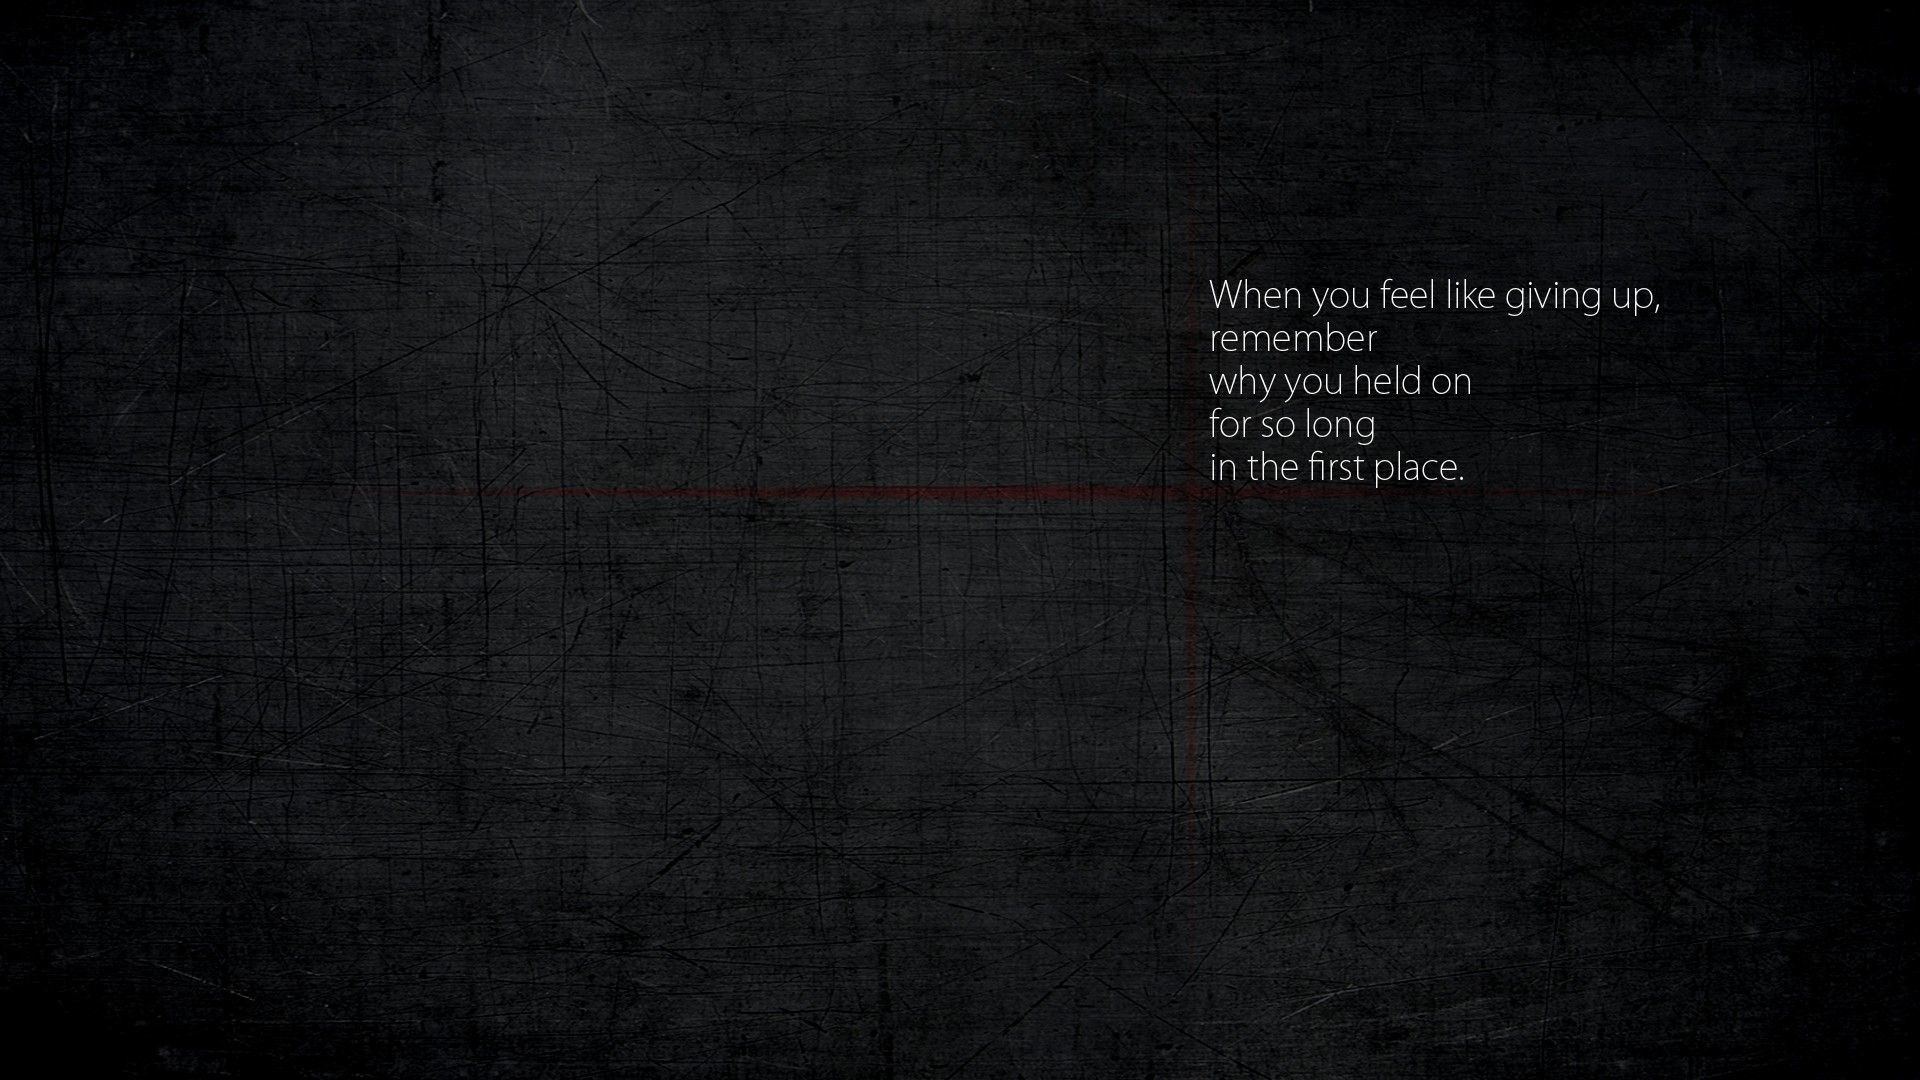 Inspirational Quotes Hd Wallpapers Posted By Samantha Walker